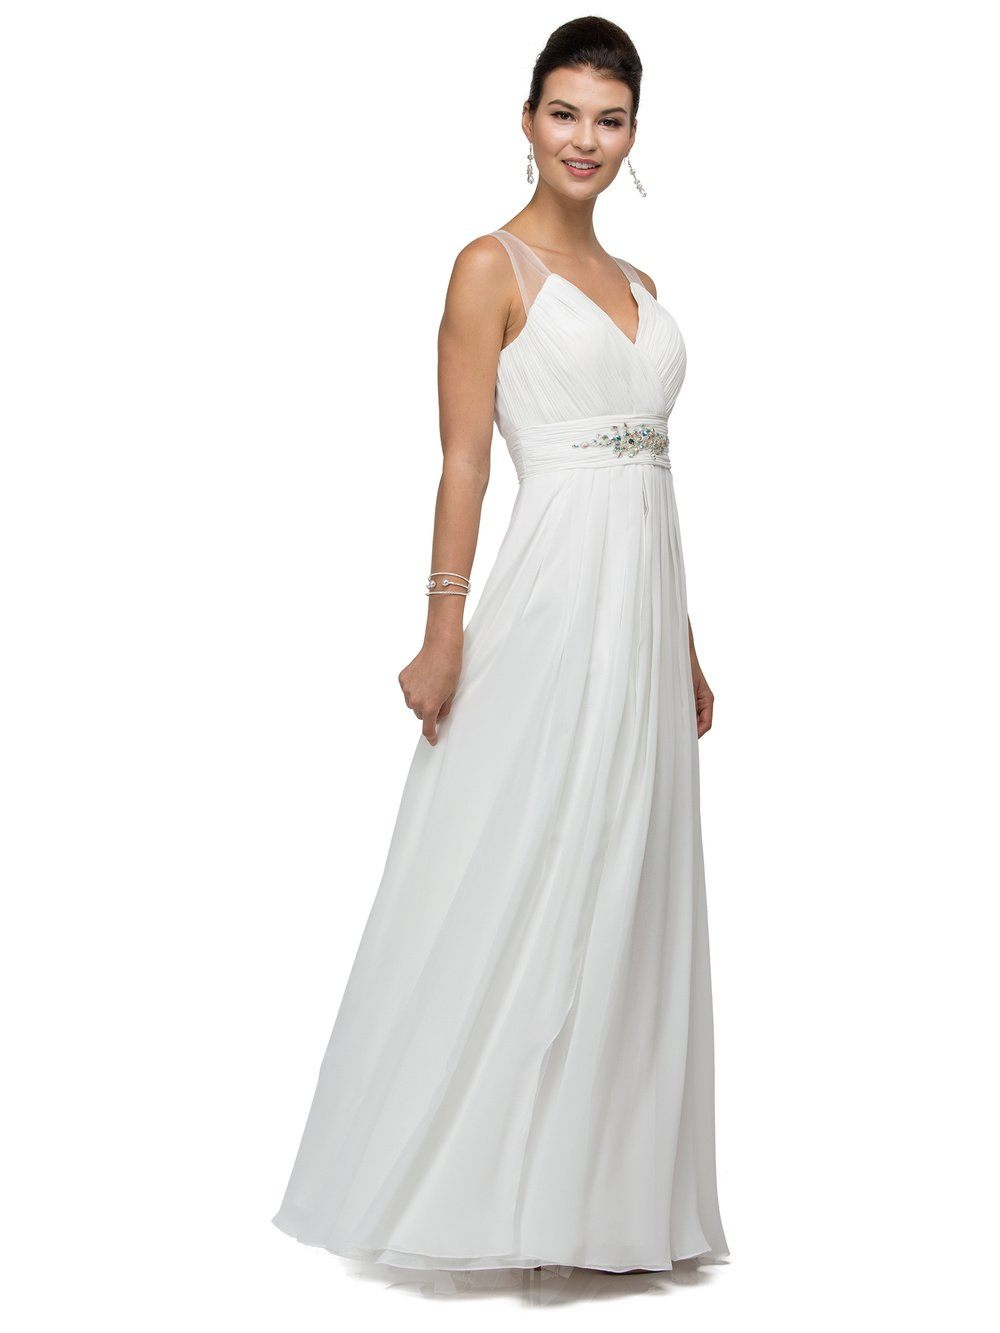 Elegant simple wedding dress for beach wedding simply for Simple wedding dresses under 200